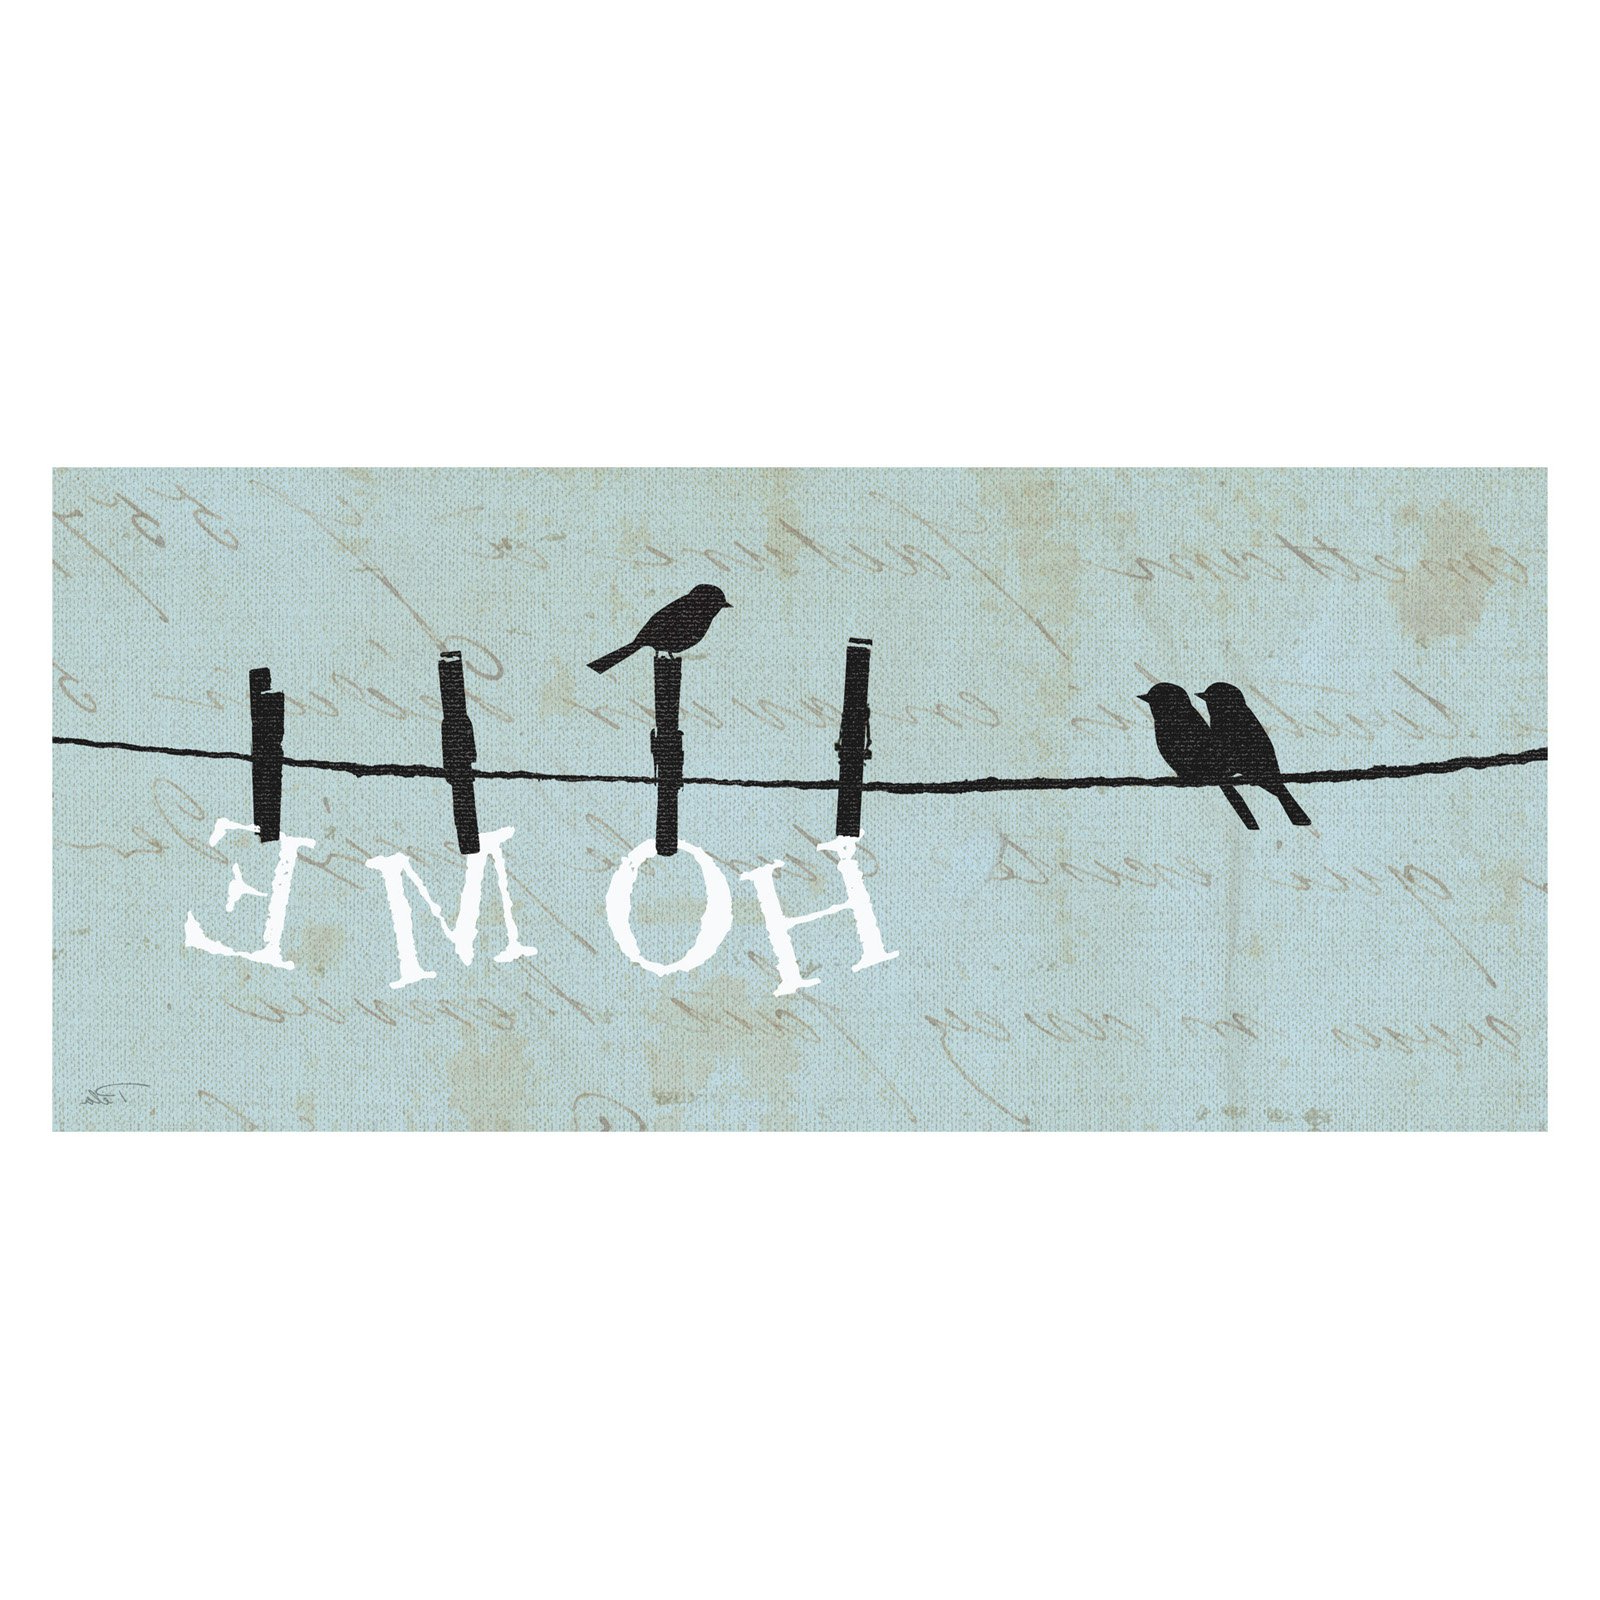 Newest Birds On A Wire Wall Art – Pmpresssecretariat Inside Birds On A Wire Wall Decor (View 11 of 20)